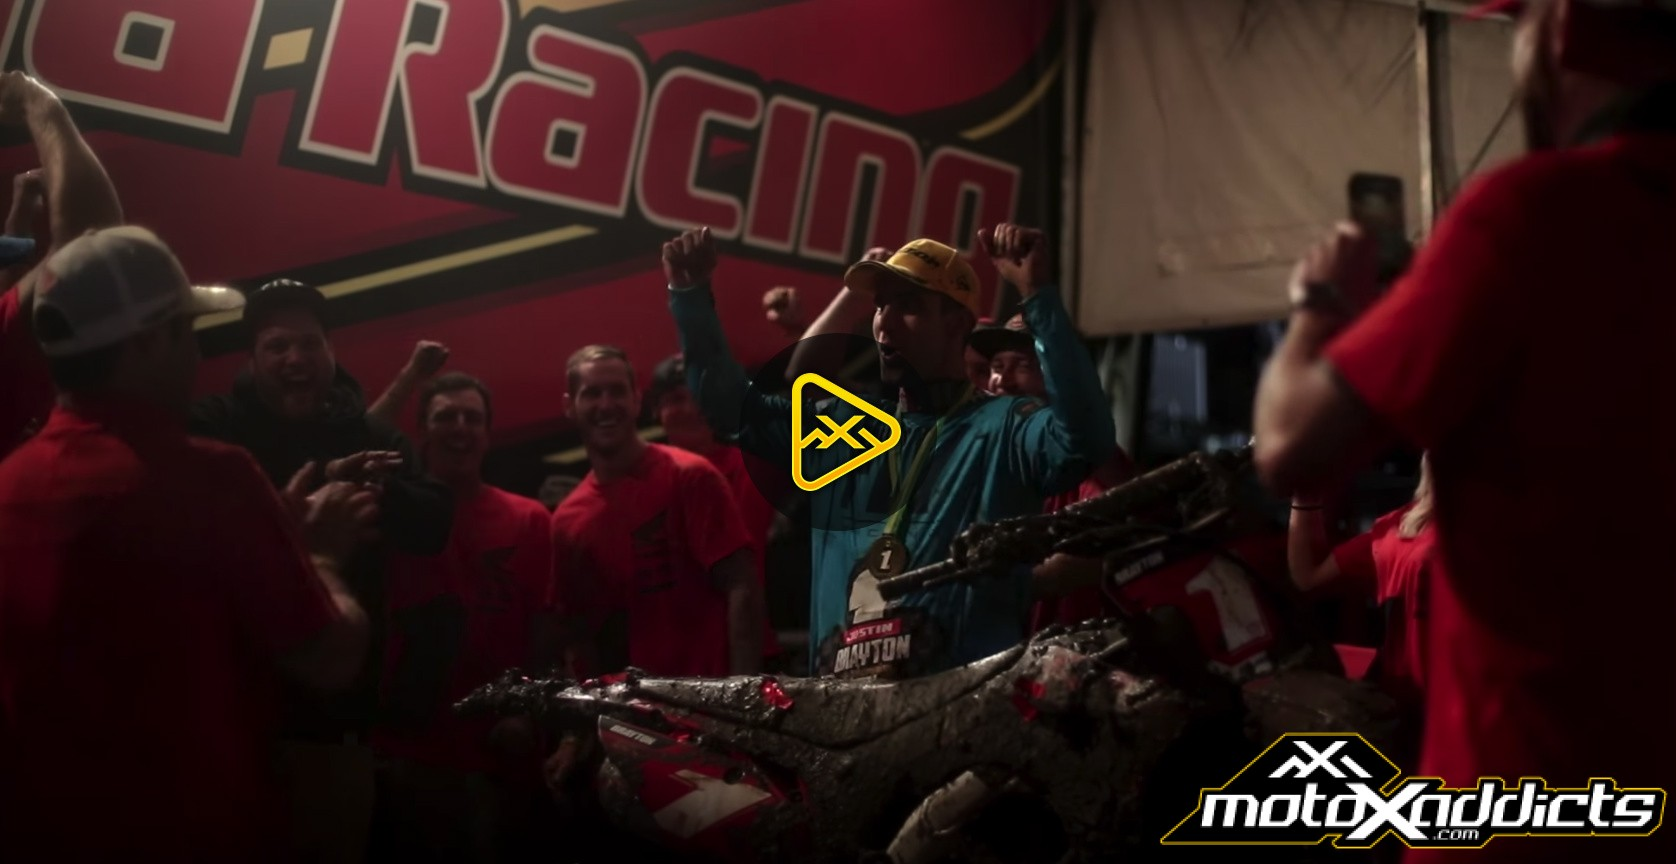 Behind the Scenes of Justin Brayton's Back-to-Back Australian SX Title